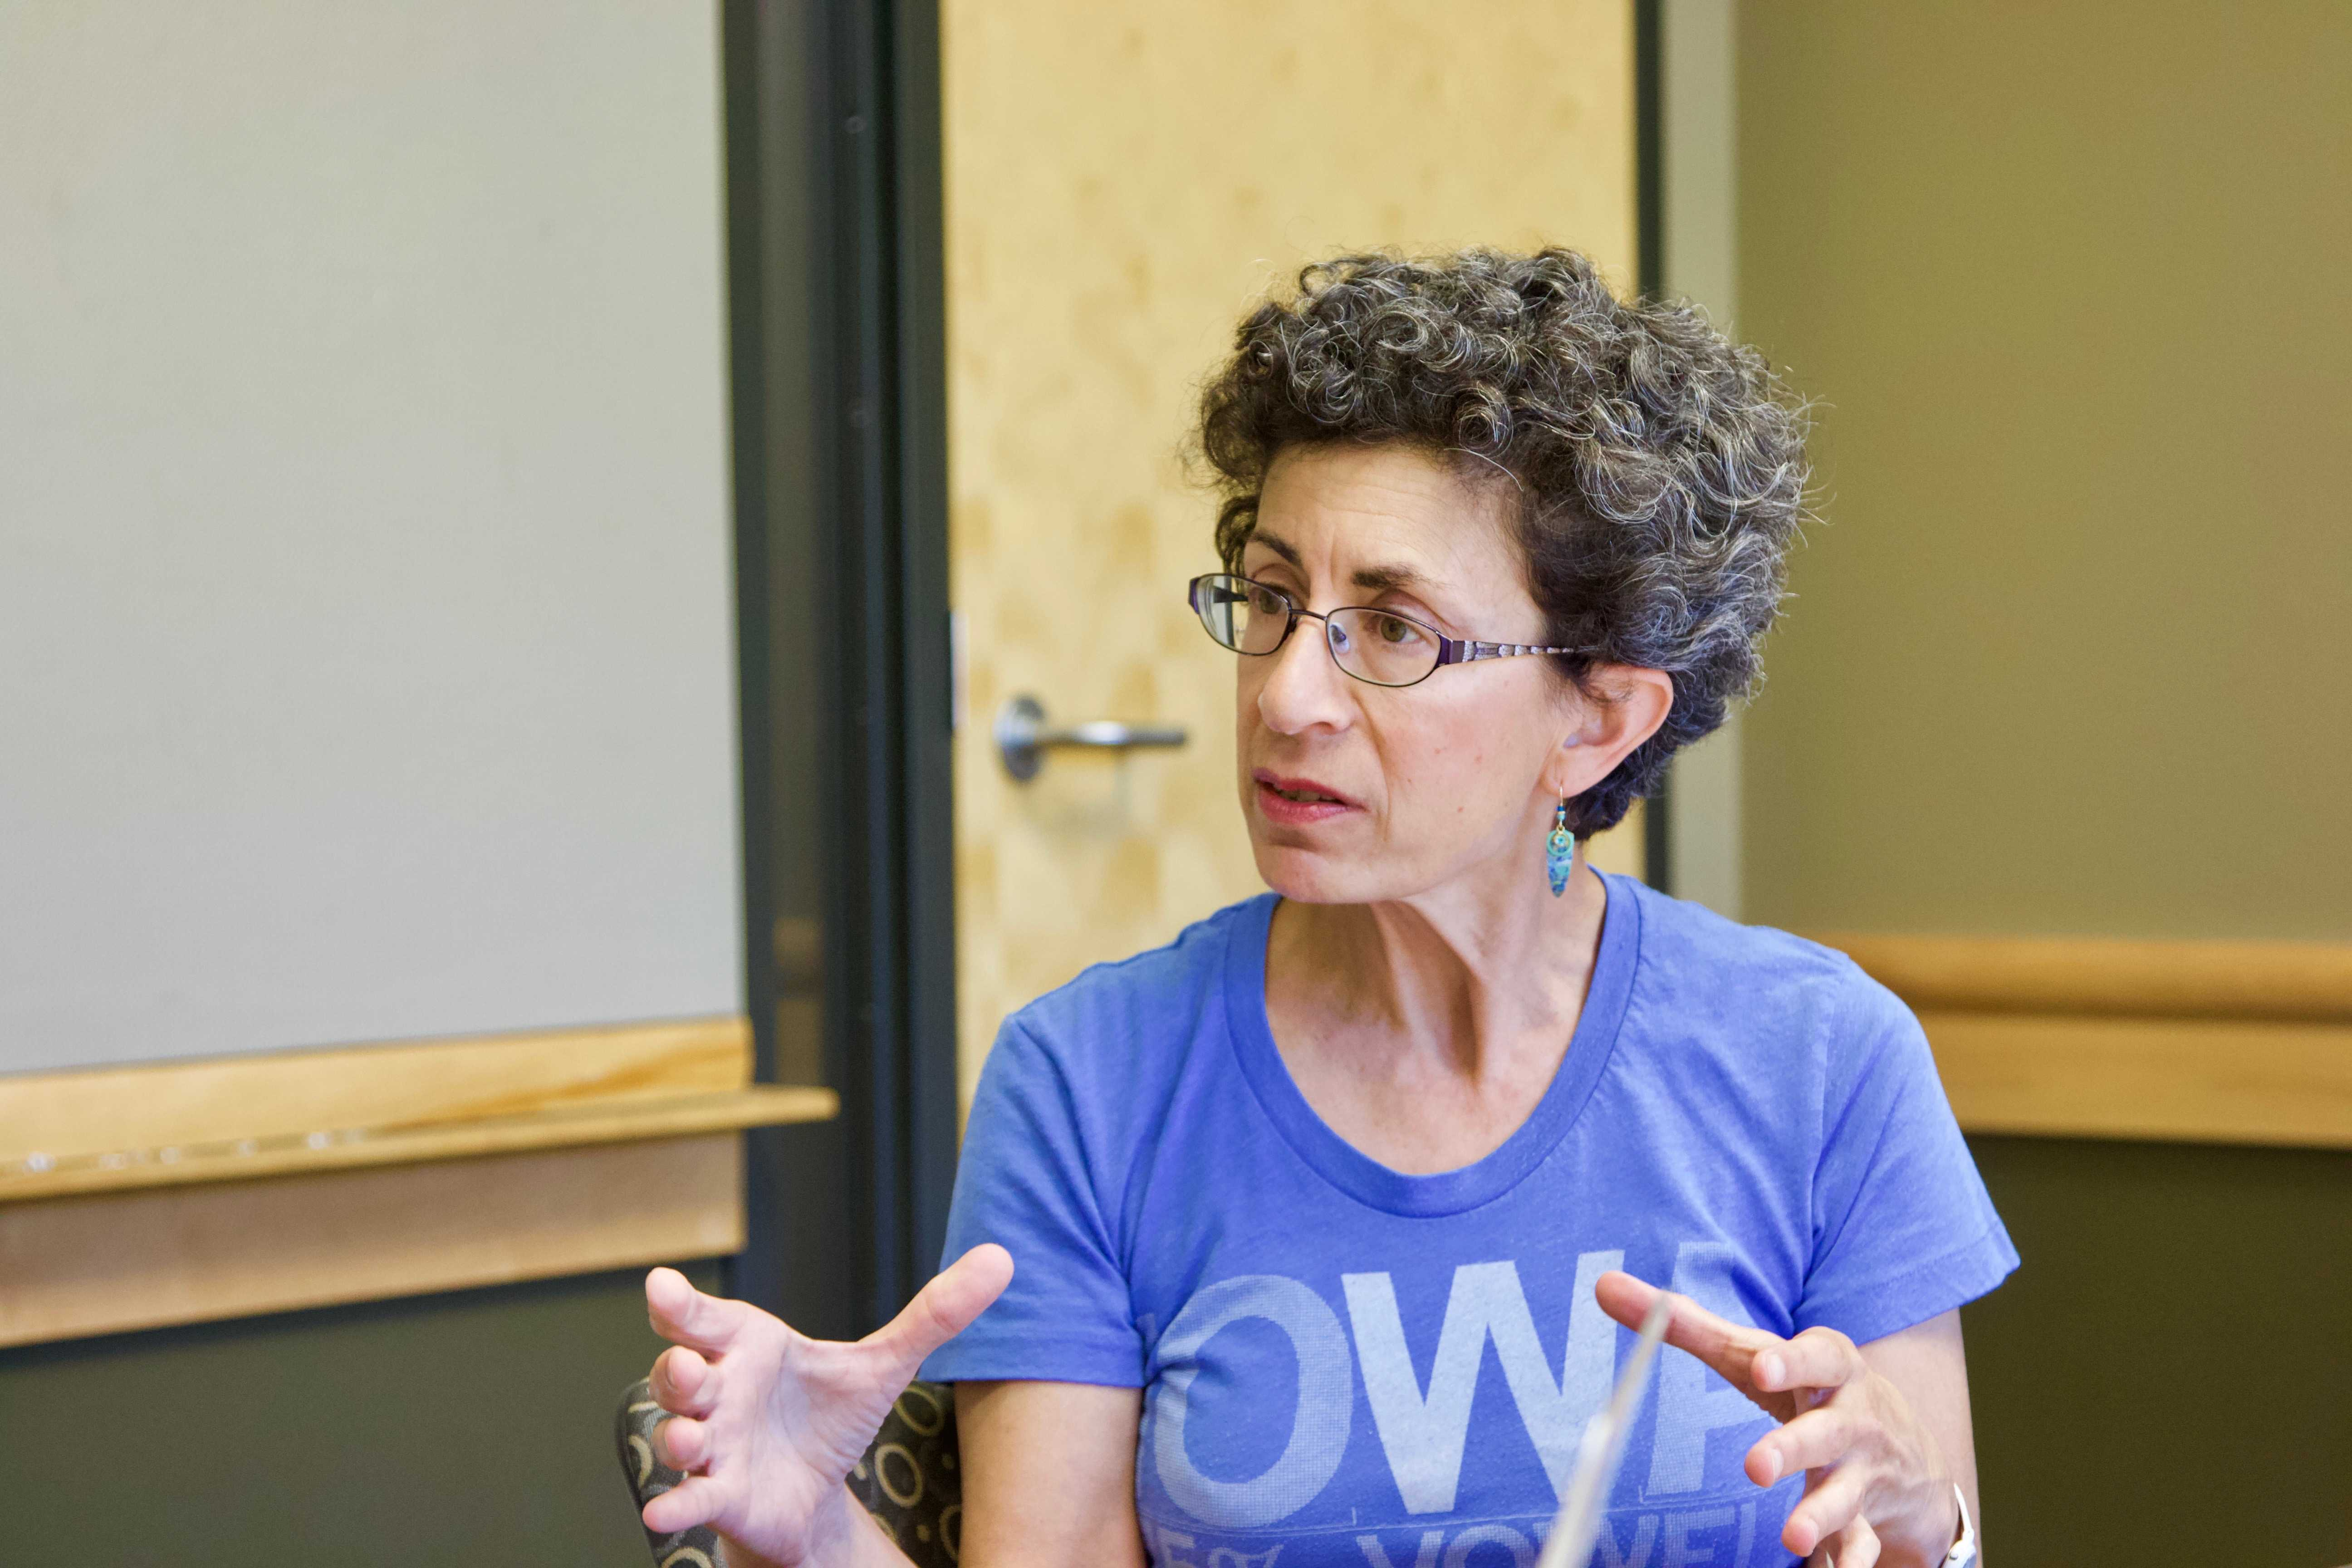 Democratic candidate for Iowa's 37th District Janice Weiner speaks with The Daily Iowan in the Adler Journalism Building on Sunday, June 3. Weiner served as a U.S. diplomat for over 25 years, and was born and raised in Coralville.